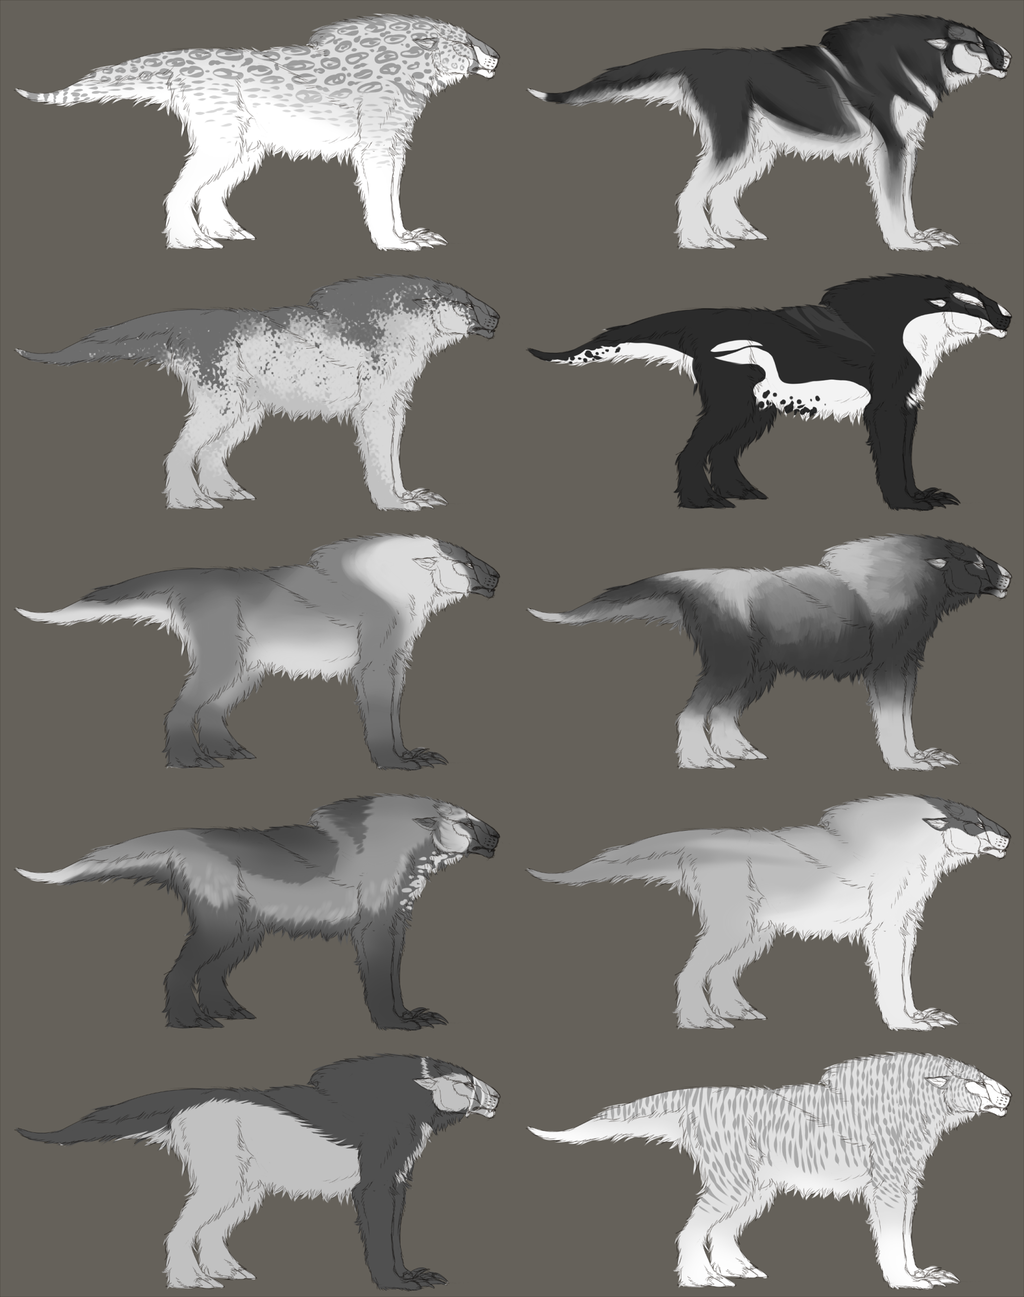 Tundra Patterns